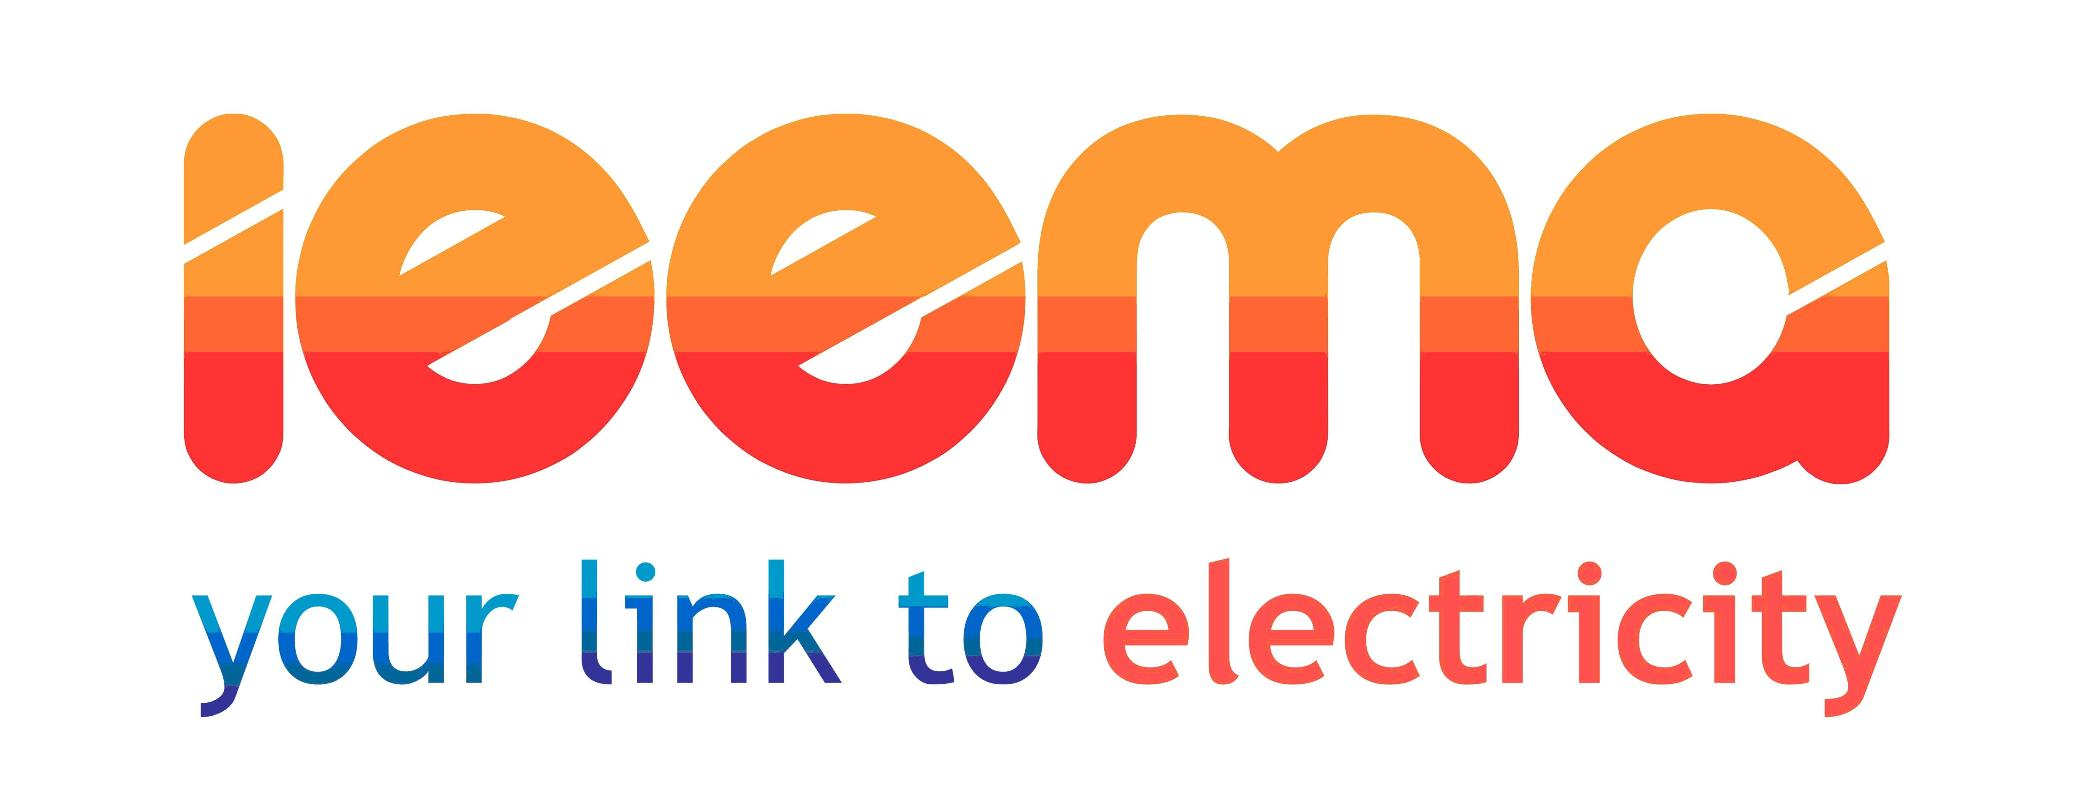 Workshop on 'Good Manufacturing Practices at Shop Floor' by IEEMA